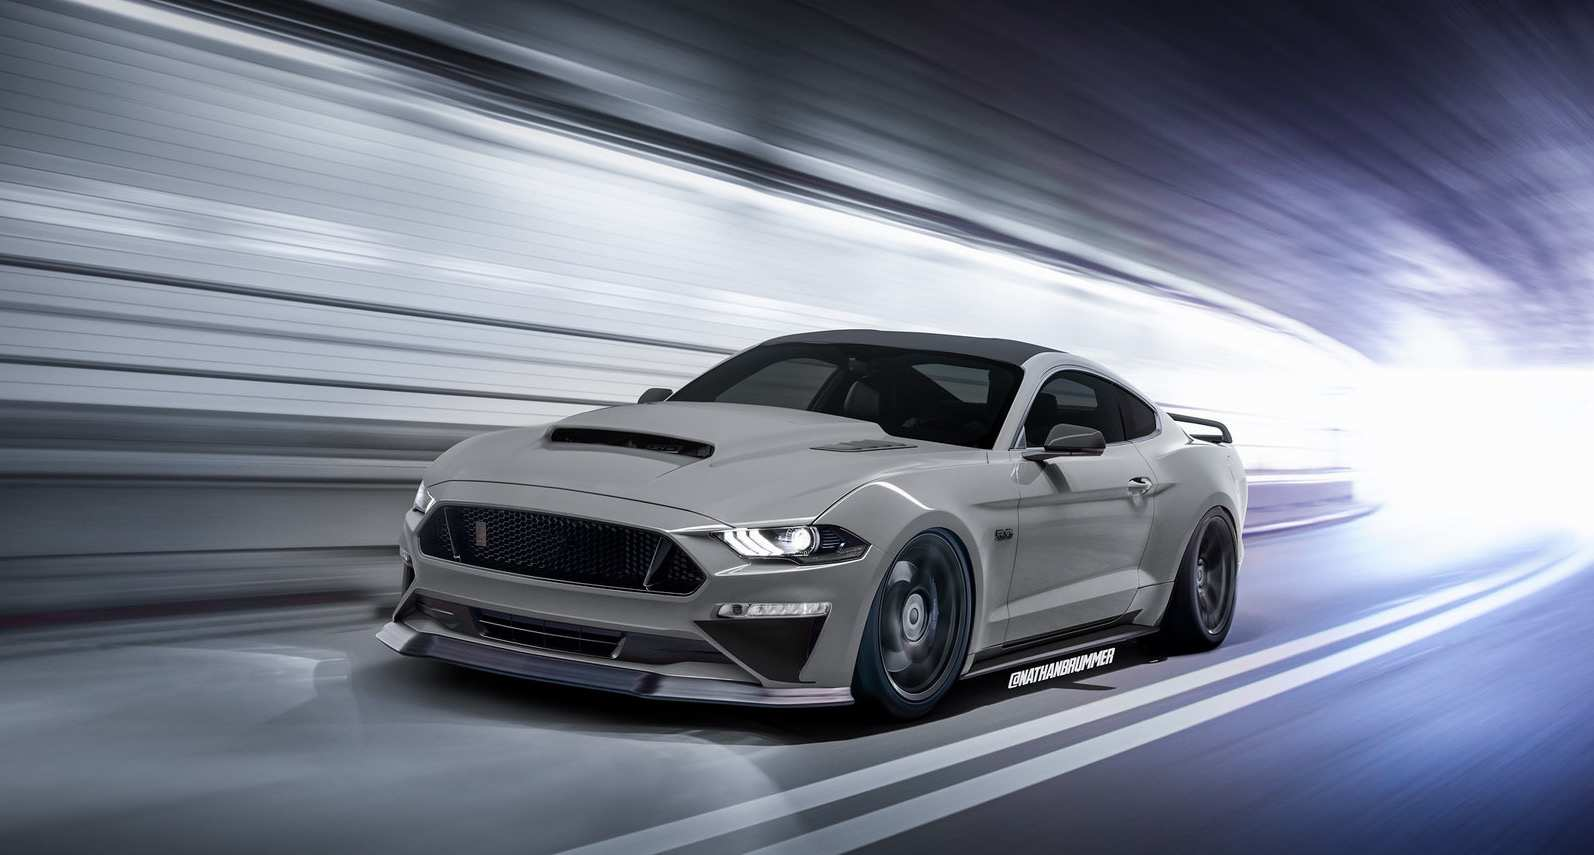 33 Gallery of 2019 Ford Shelby Gt500 Performance and New Engine for 2019 Ford Shelby Gt500